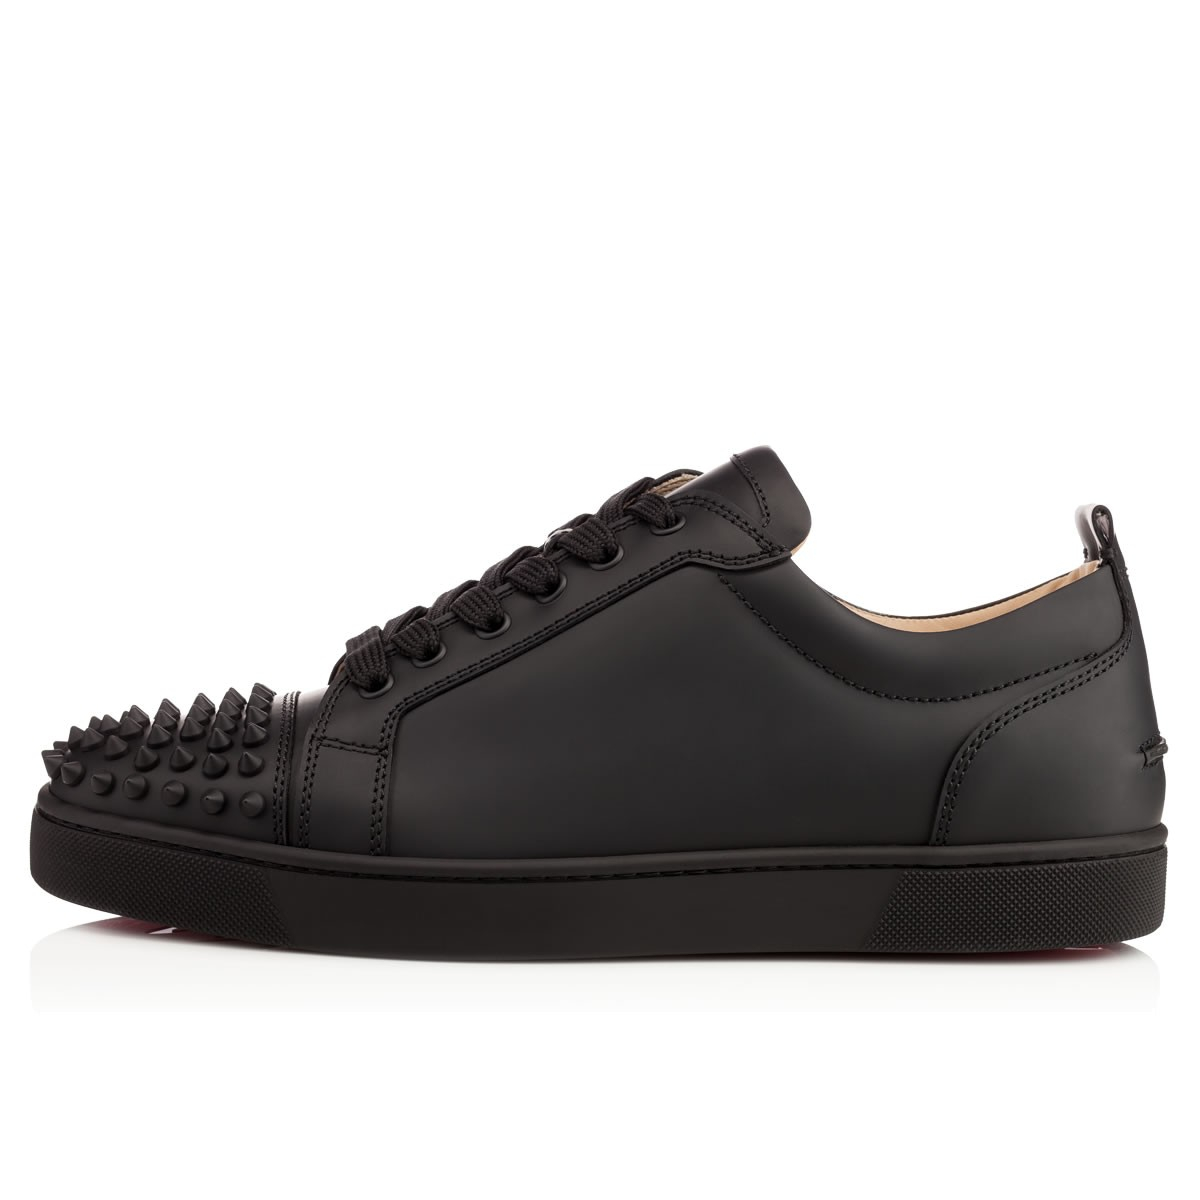 c15f0bb3c7a8 christian louboutin mens trainers